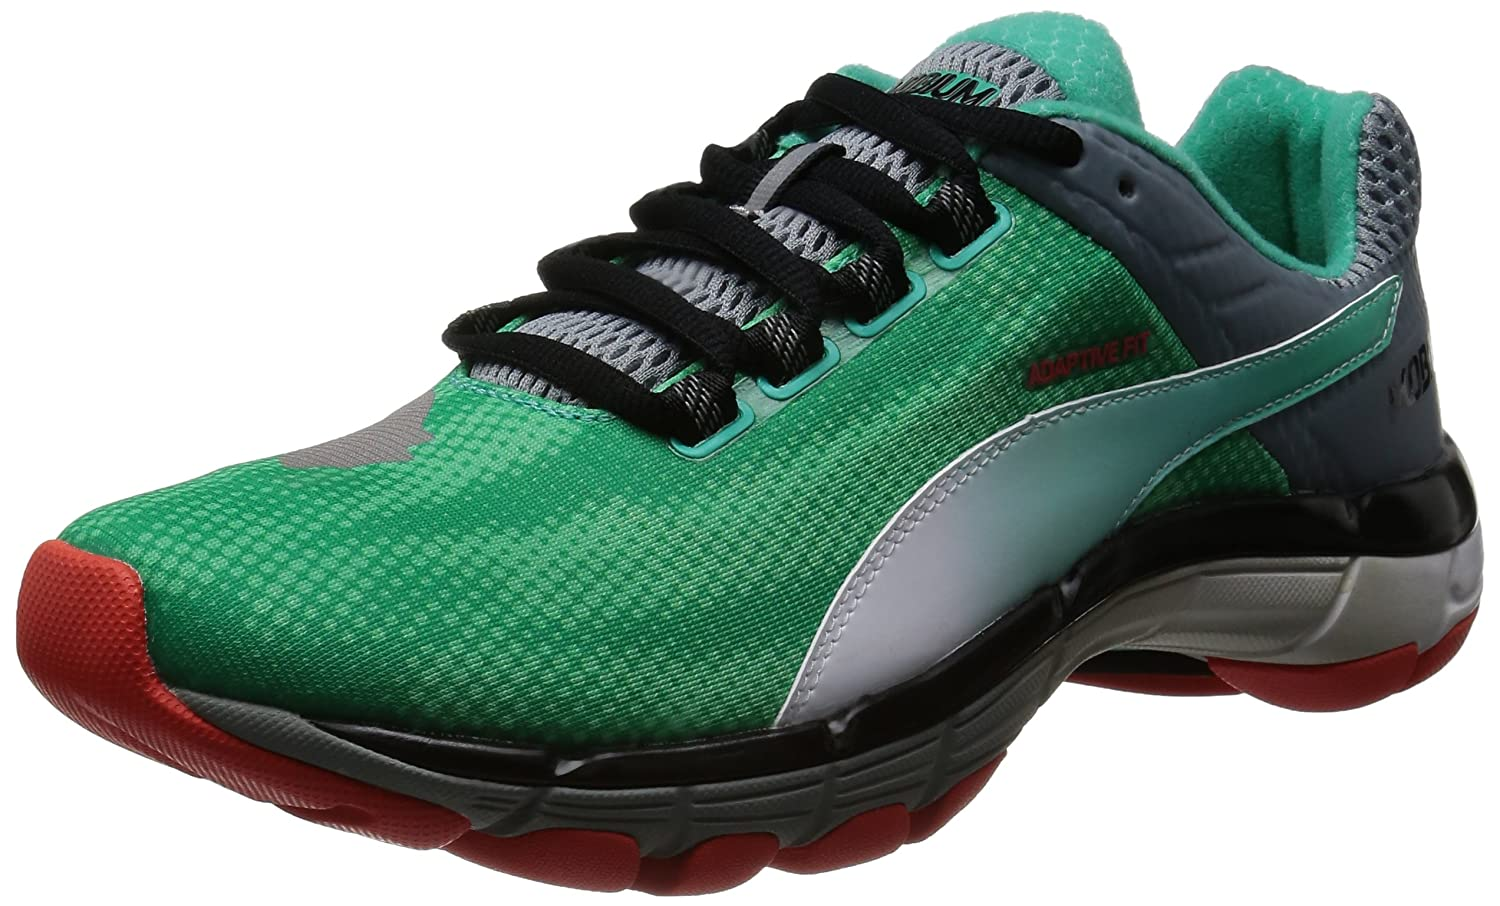 0166d3bacb2 Puma Mobium Elite Speed Running Shoes - 10.5 Green  Amazon.co.uk  Shoes    Bags